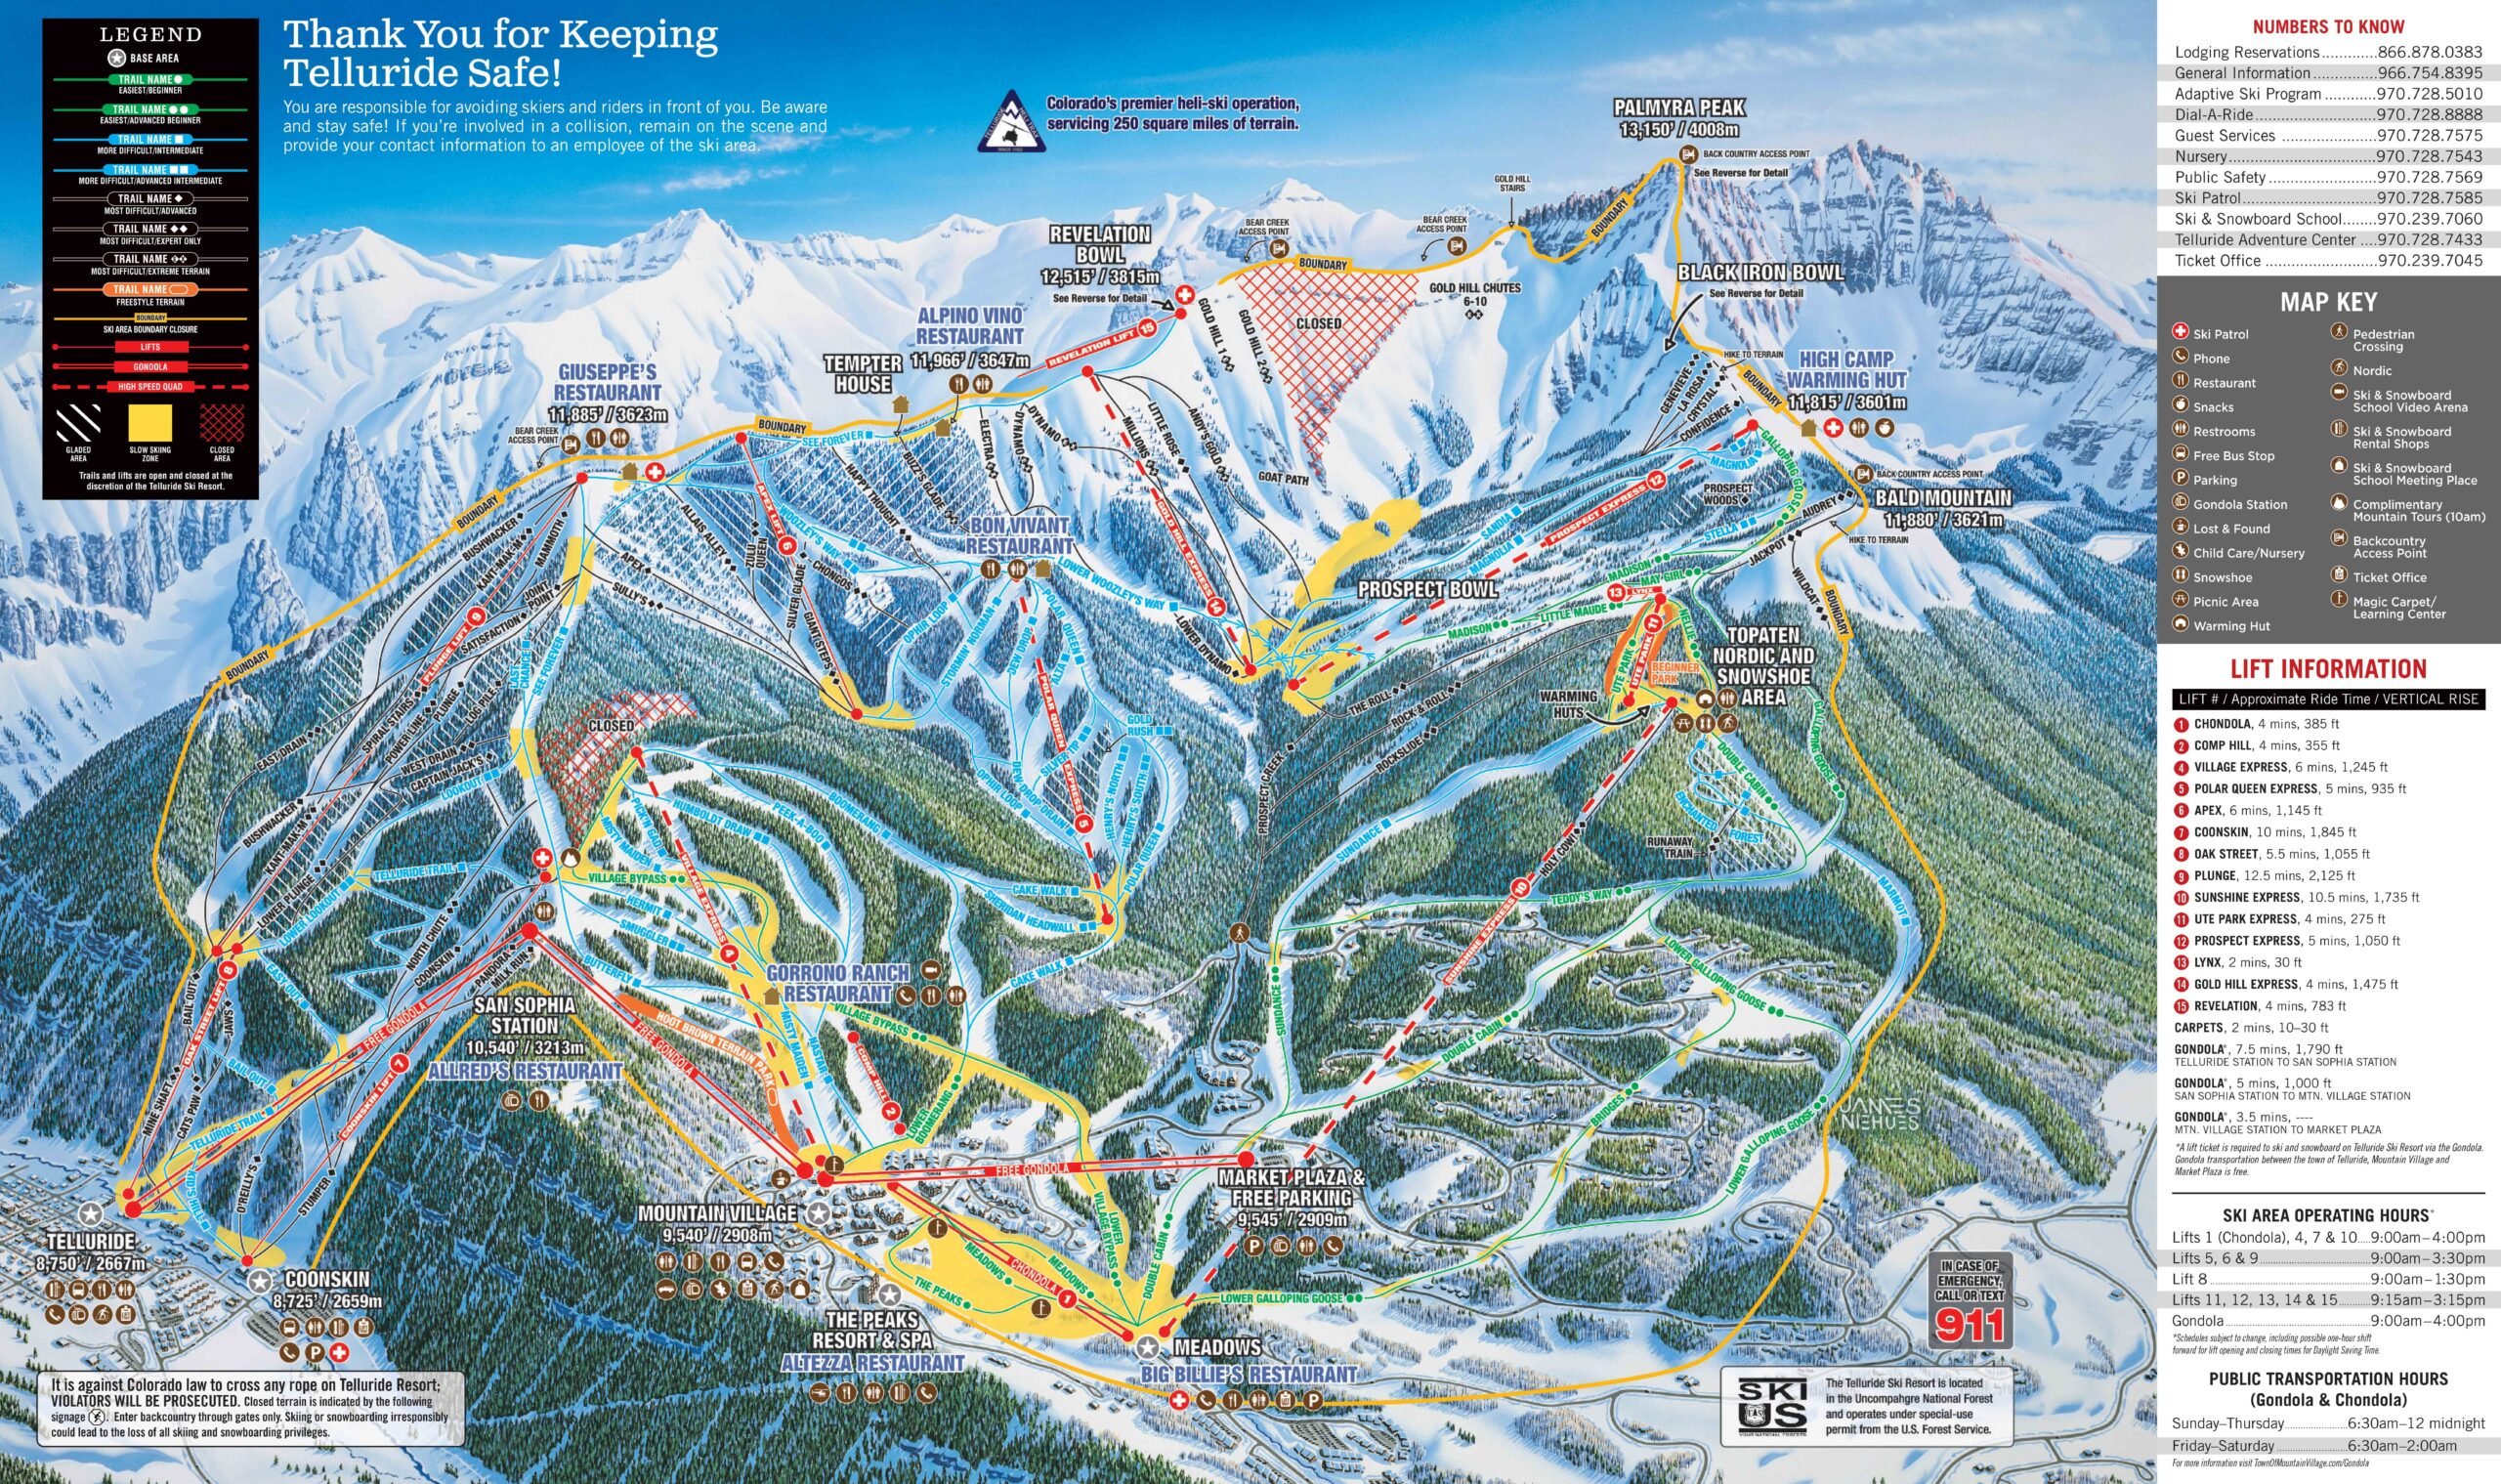 Teluride Ski Resort Trail Map